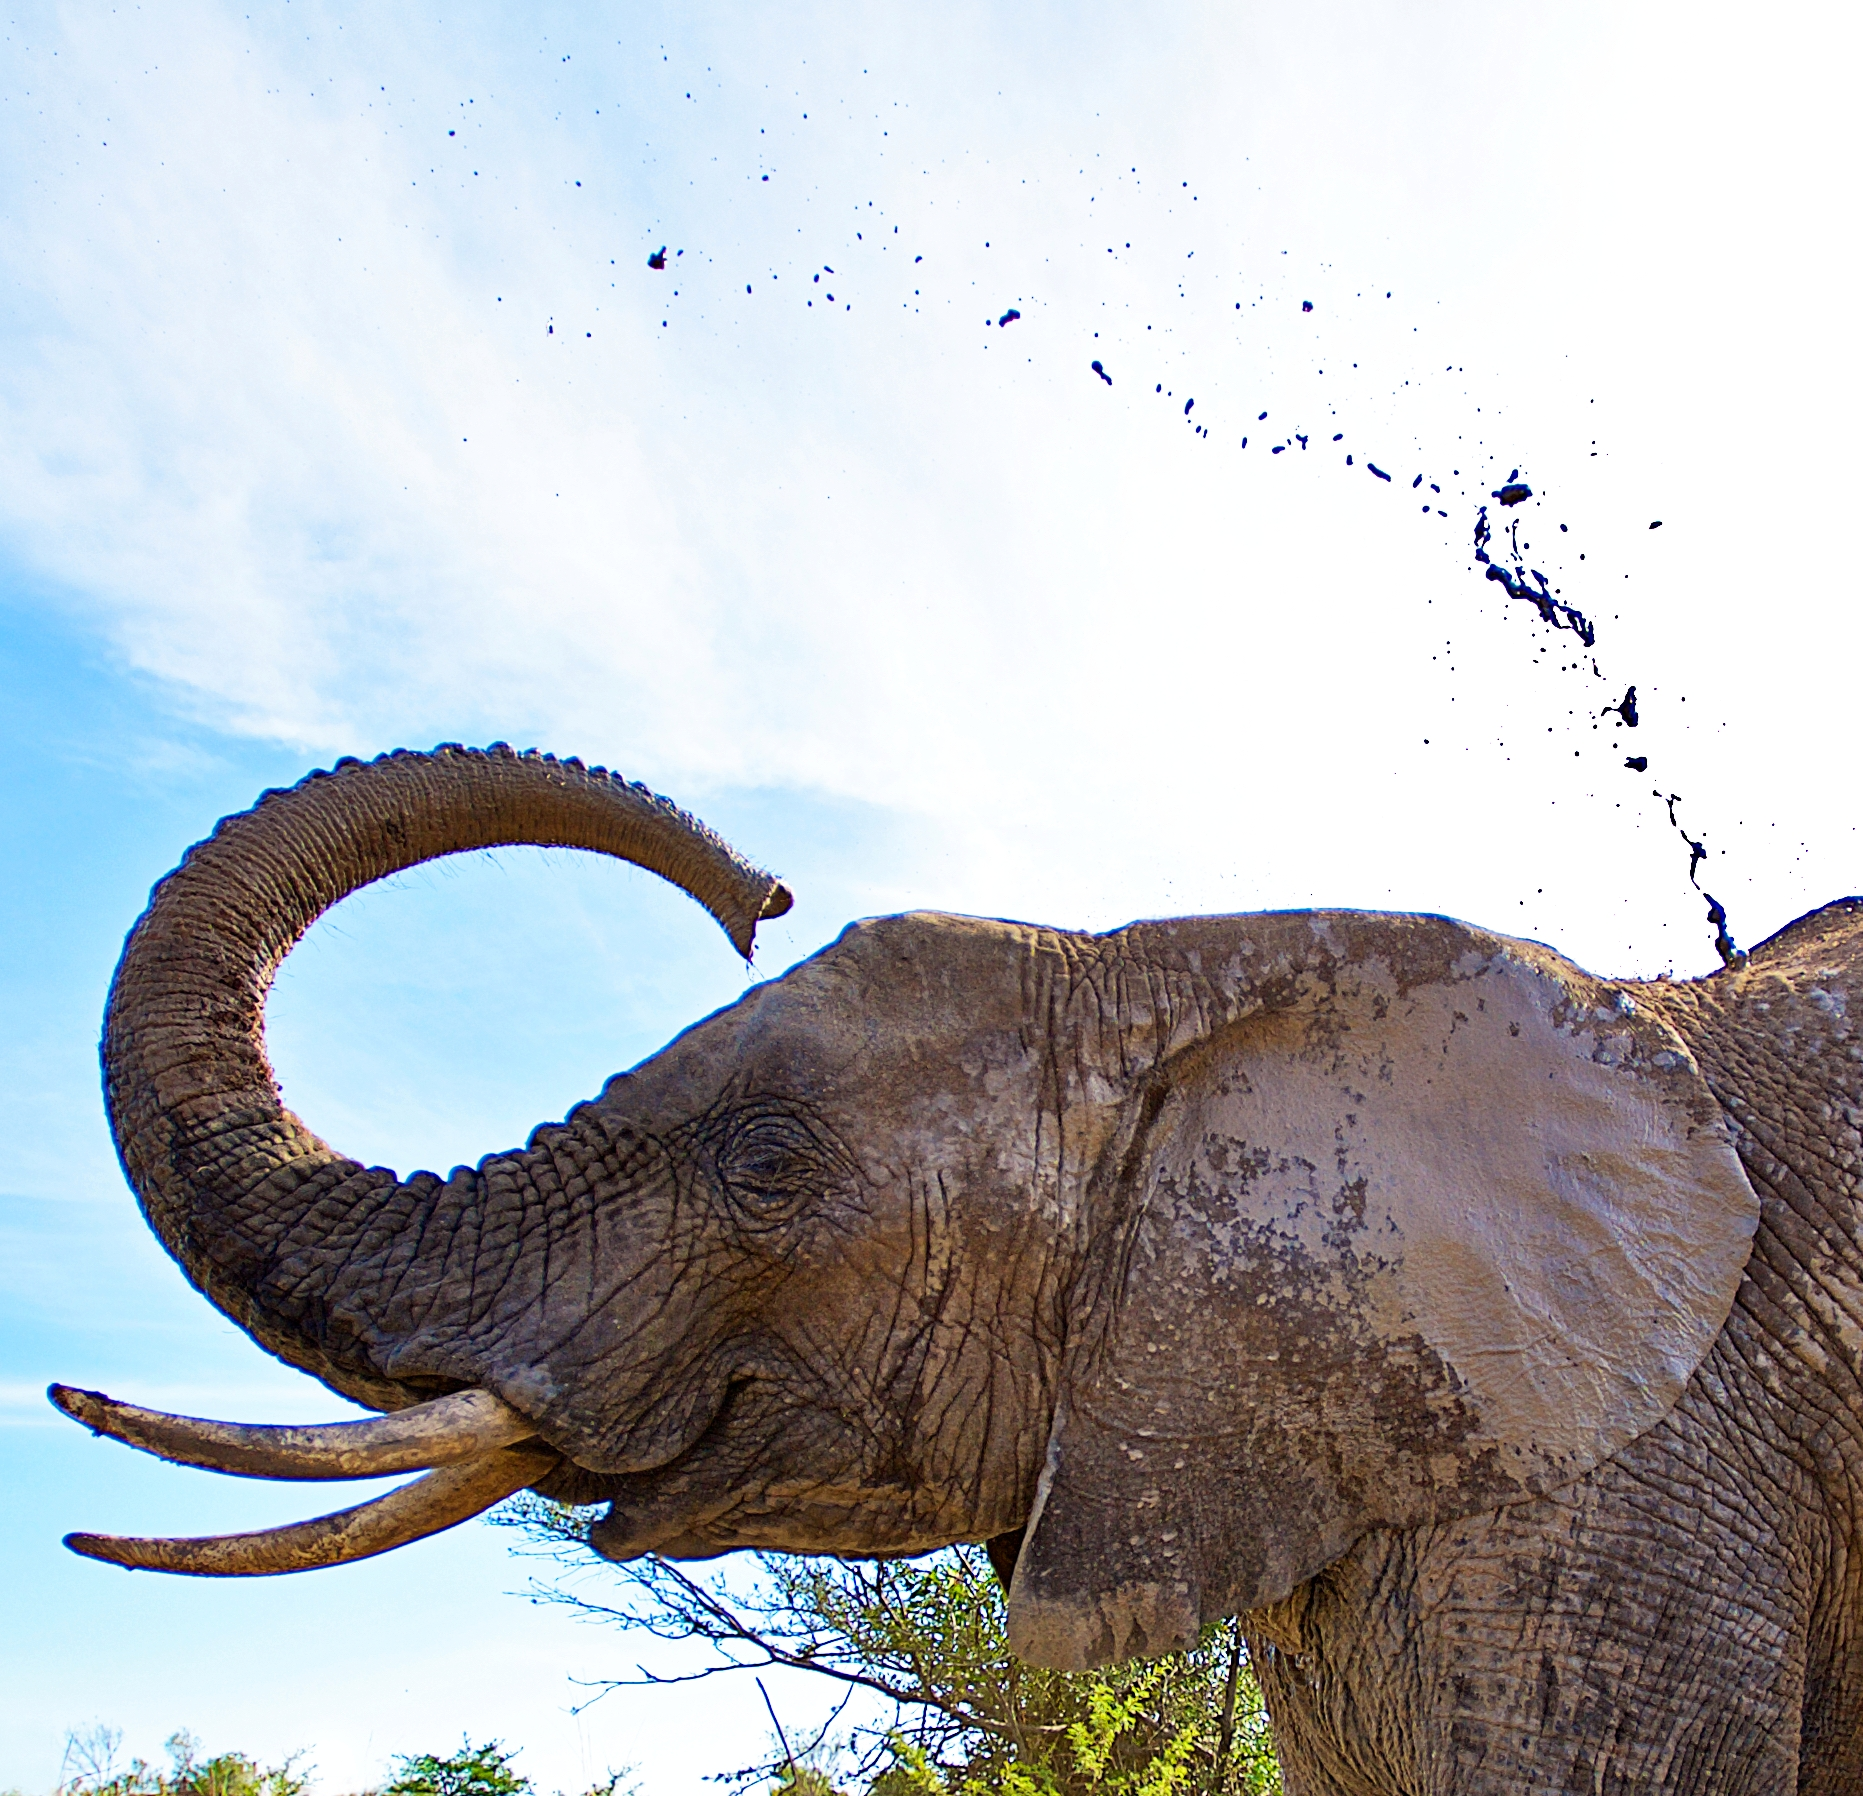 Elephants have the capability of detecting scents up to 4km away from the source.